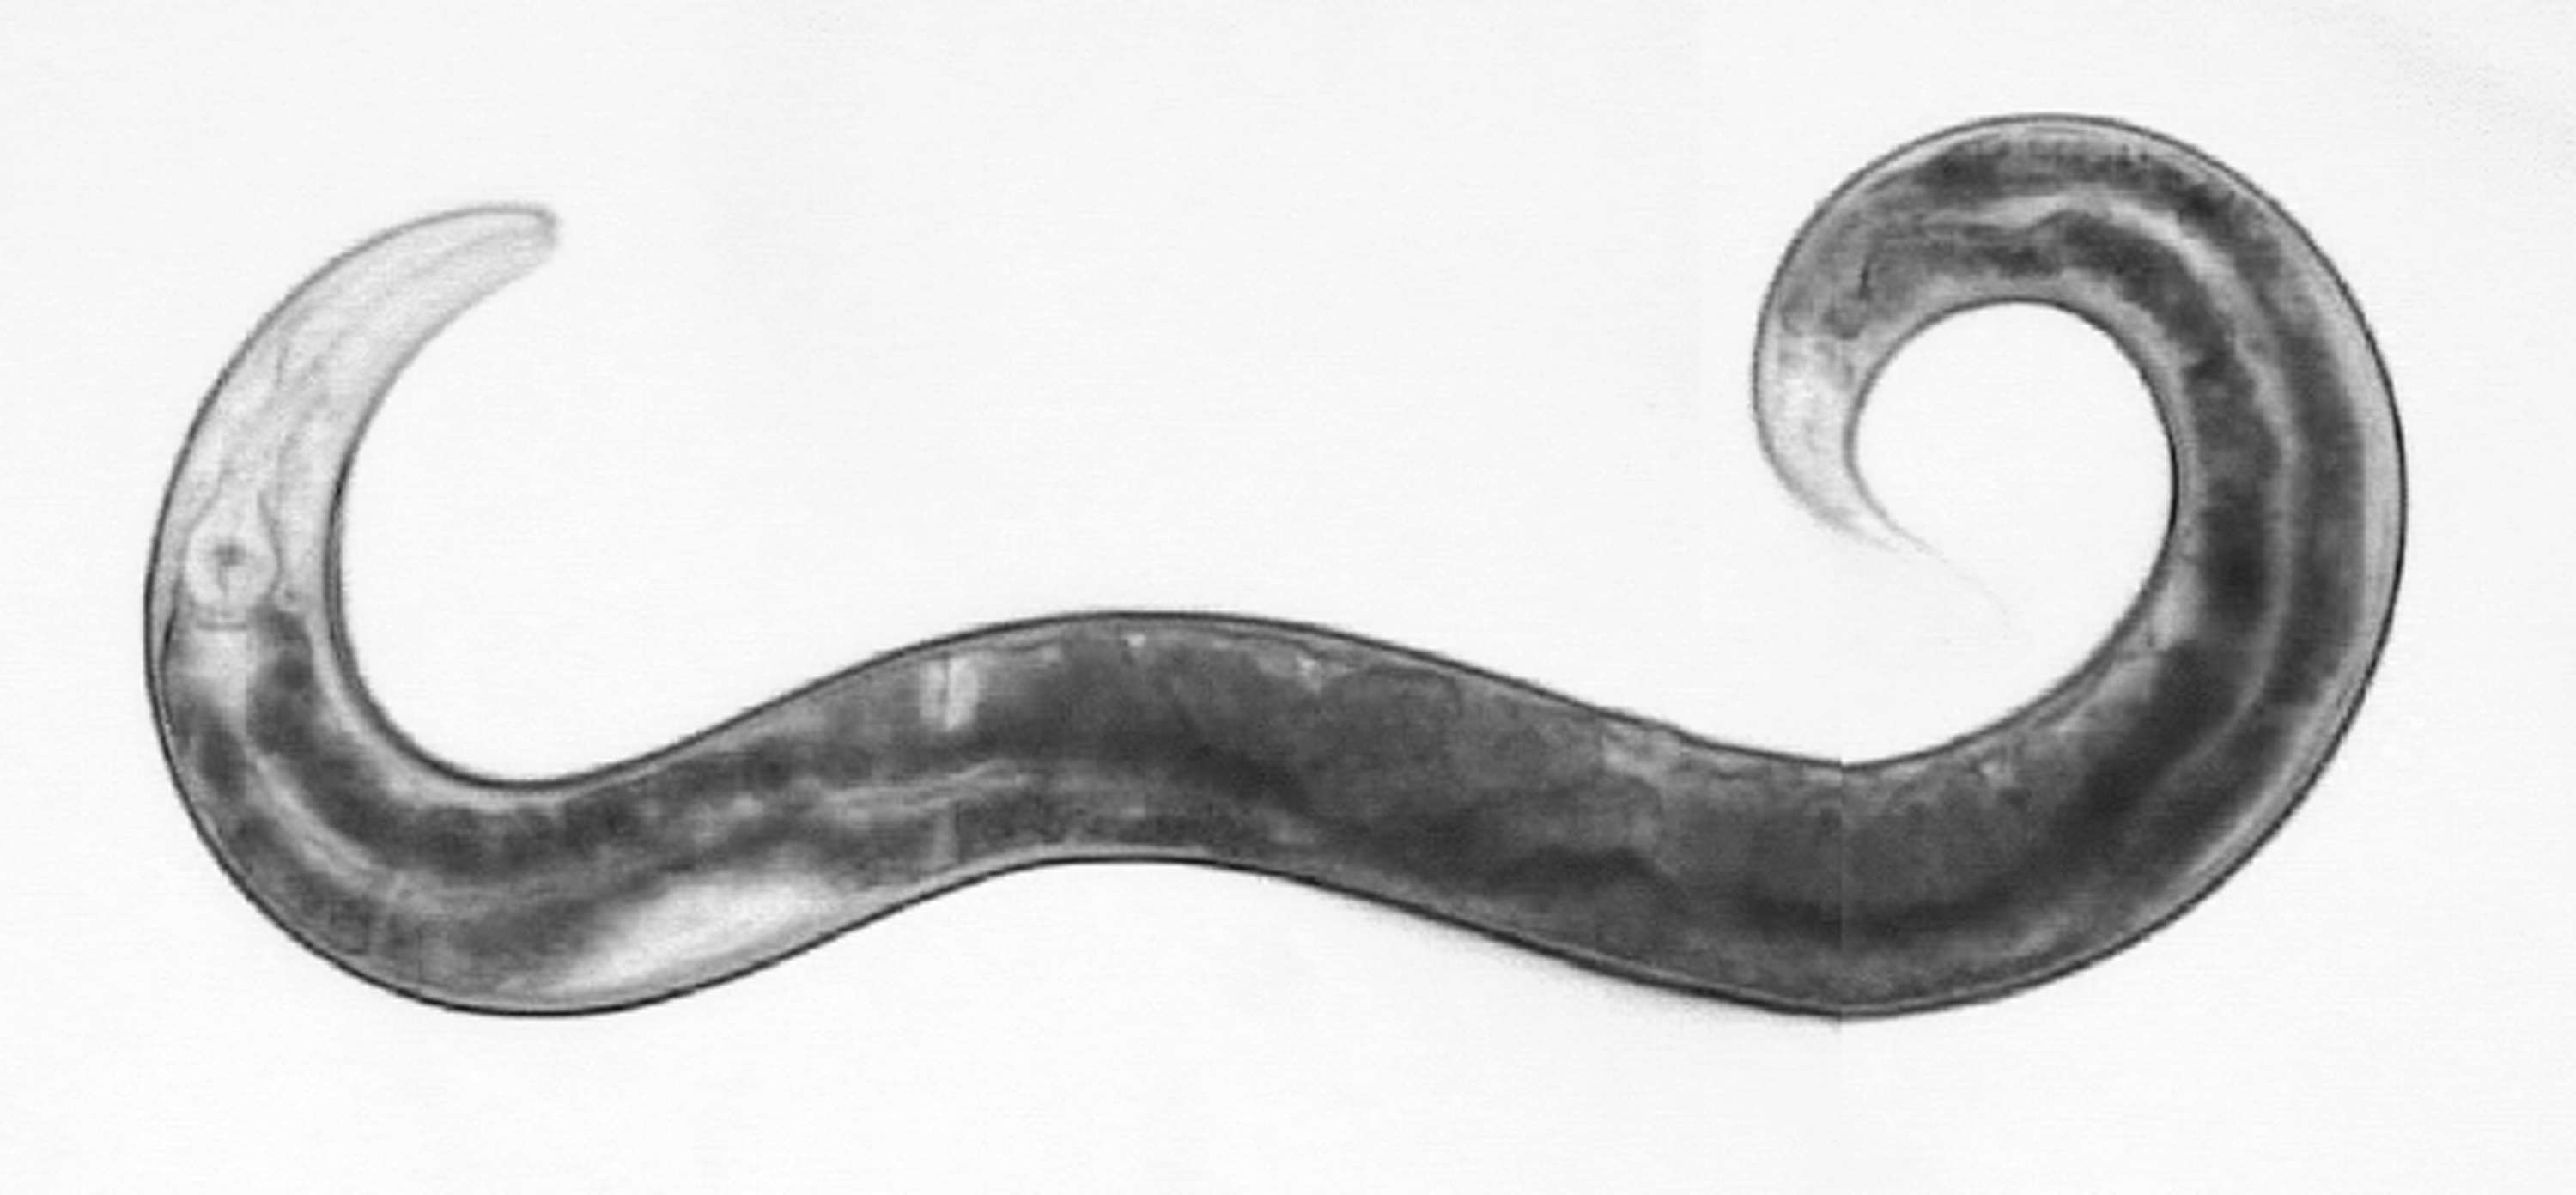 Sit uses C. Elegans, a type of roundworm, to study immunology. (unews.utah.edu)